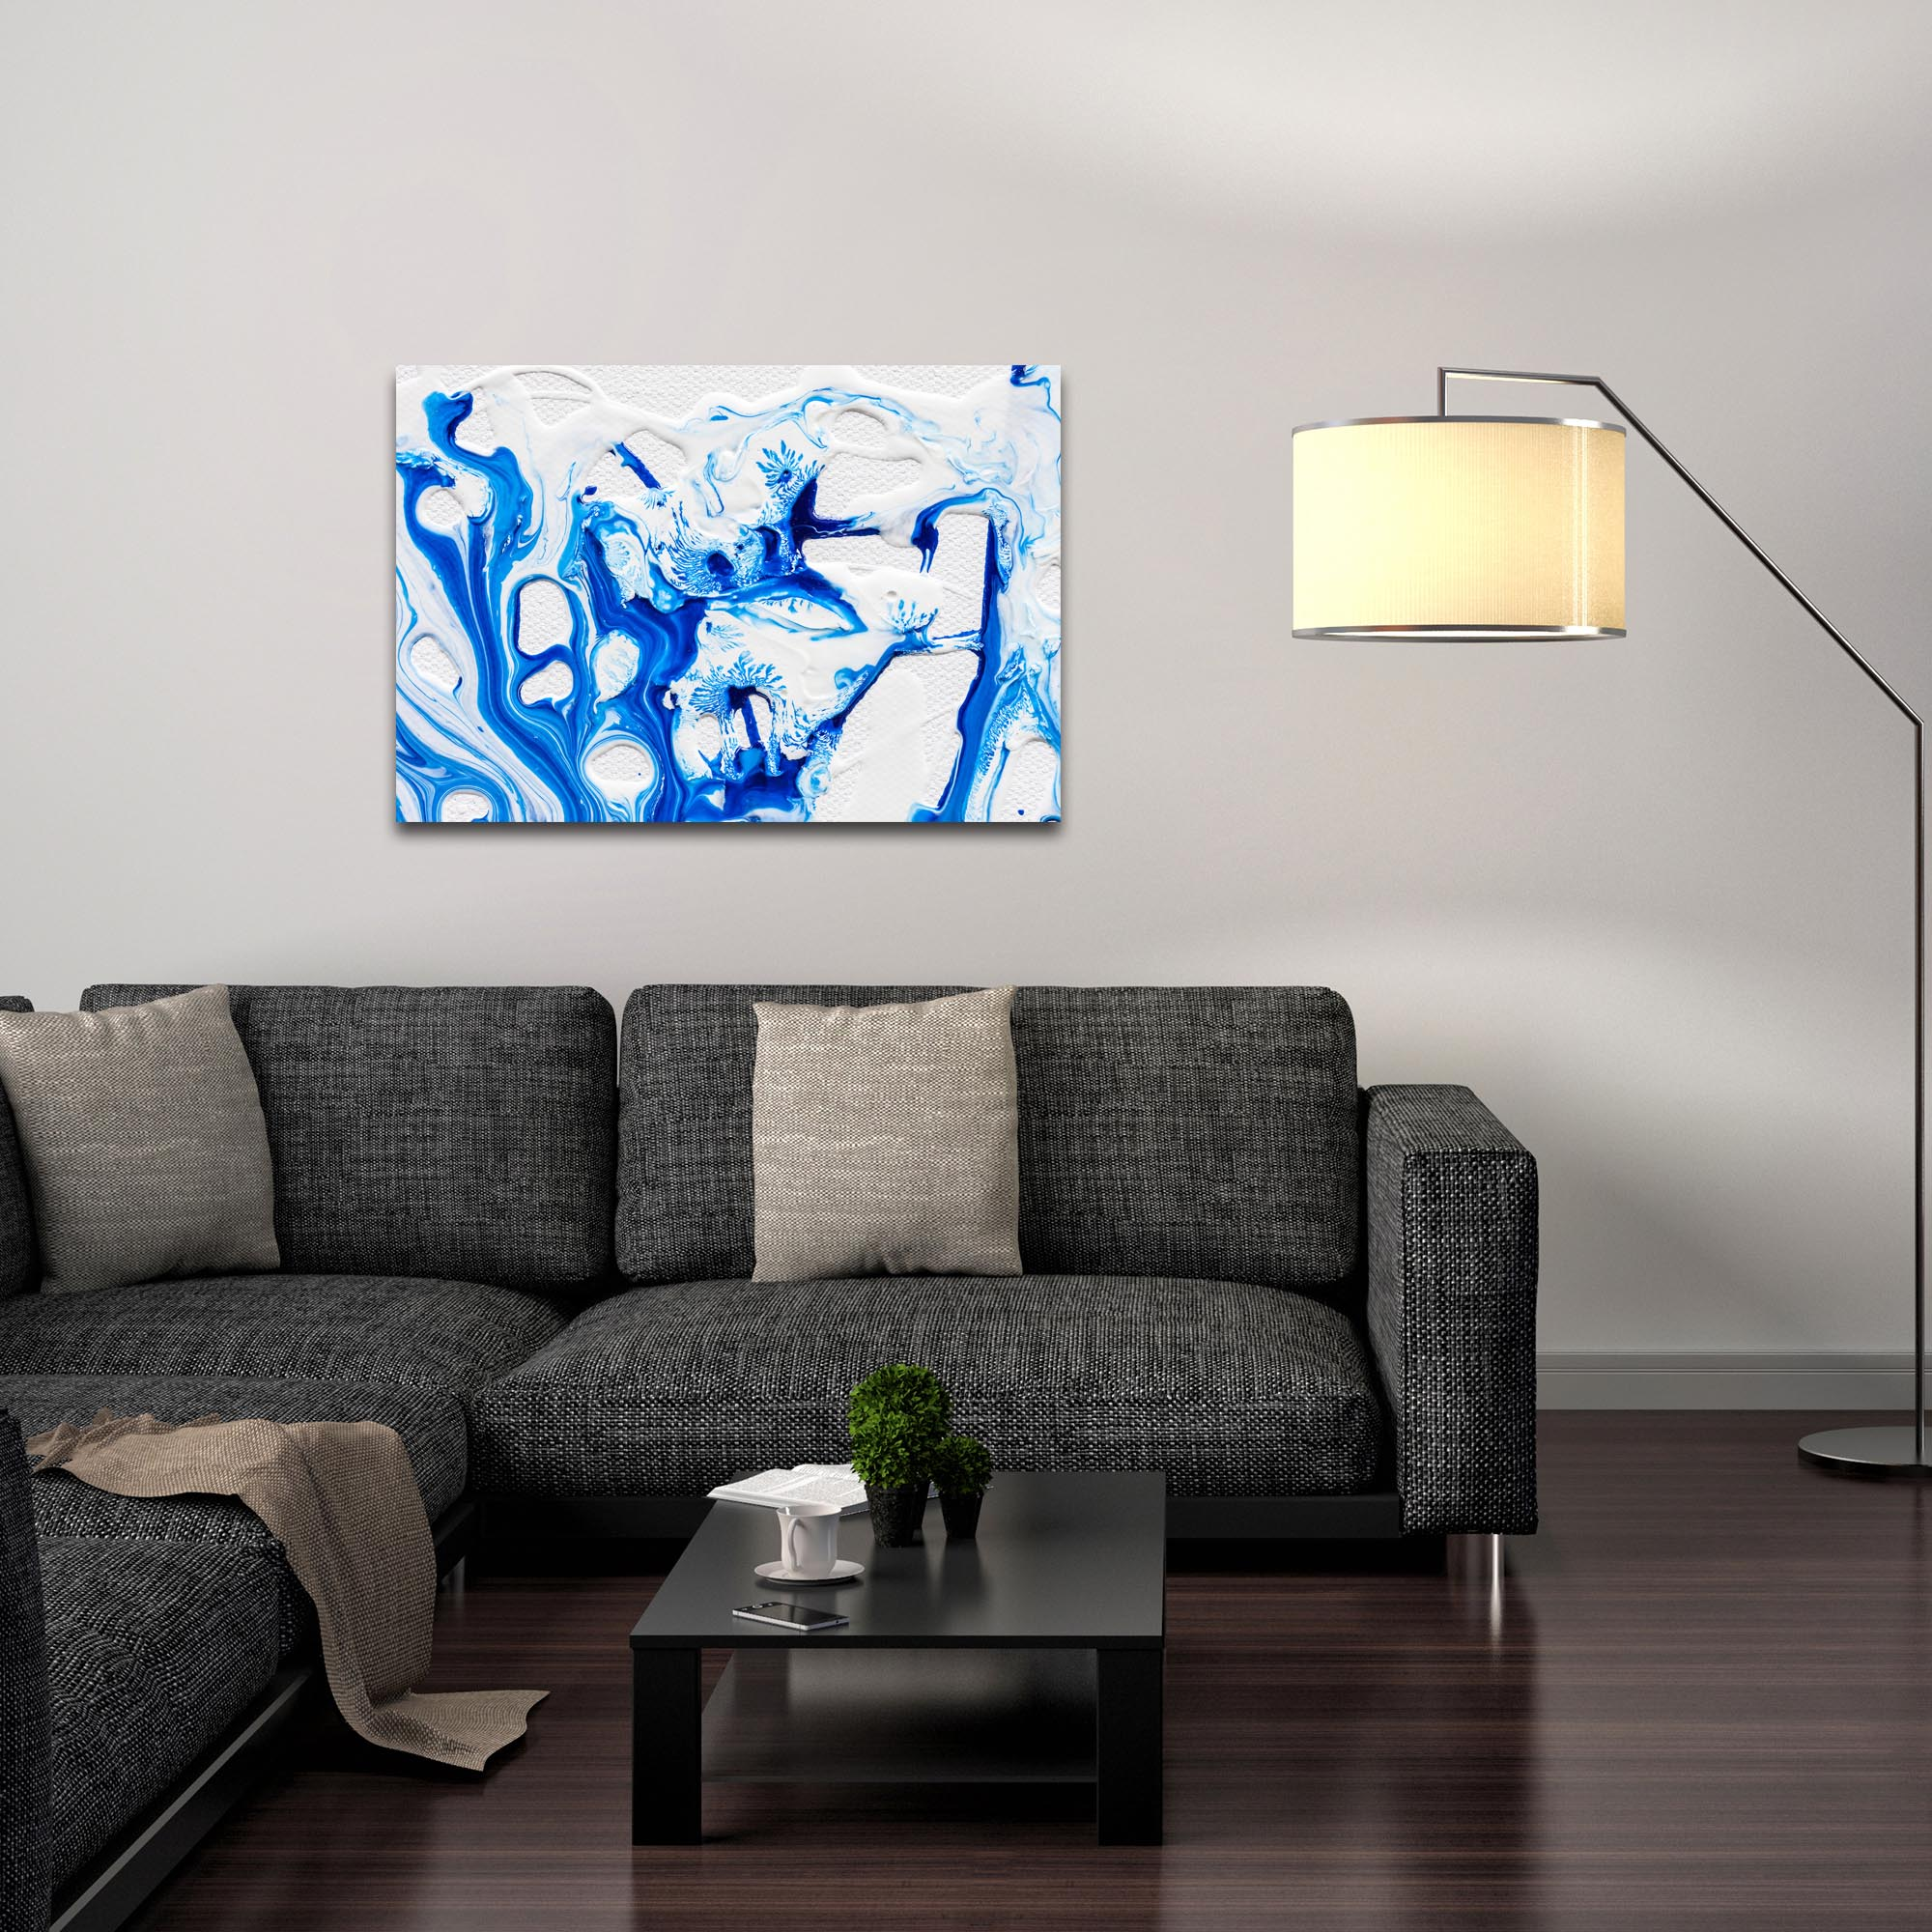 Abstract Wall Art 'Coastal Waters 3' - Colorful Urban Decor on Metal or Plexiglass - Lifestyle View